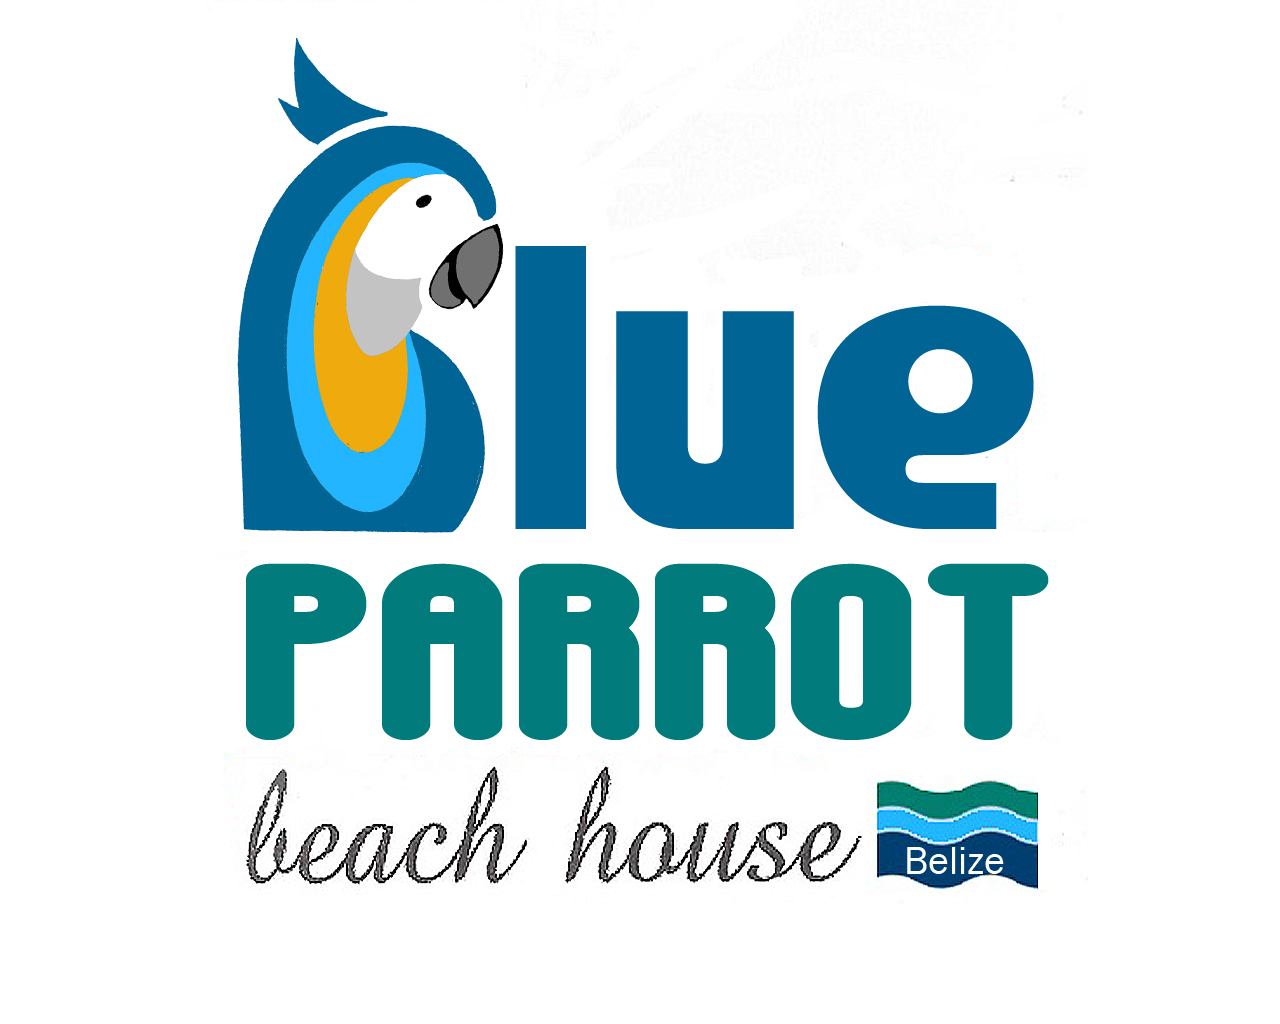 Blue Parrot Beach House